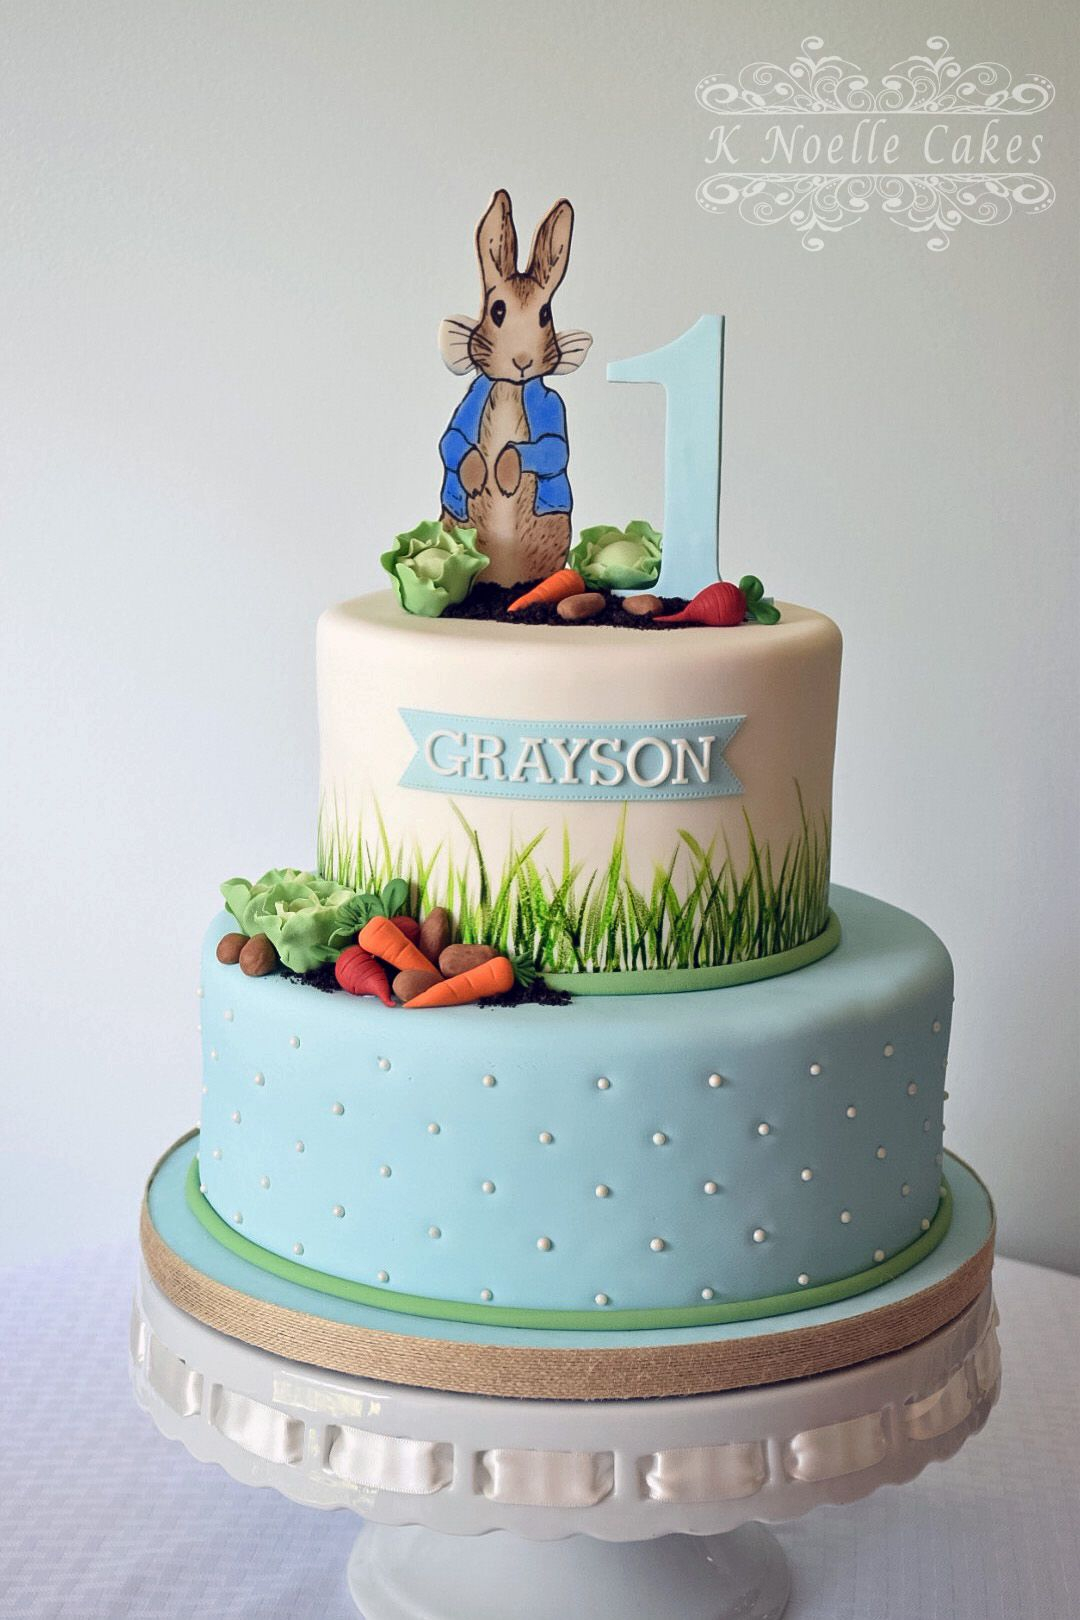 Bunny Birthday Cake Peter Rabbit Themed 1st Birthday Cake K Noelle Cakes Cakes